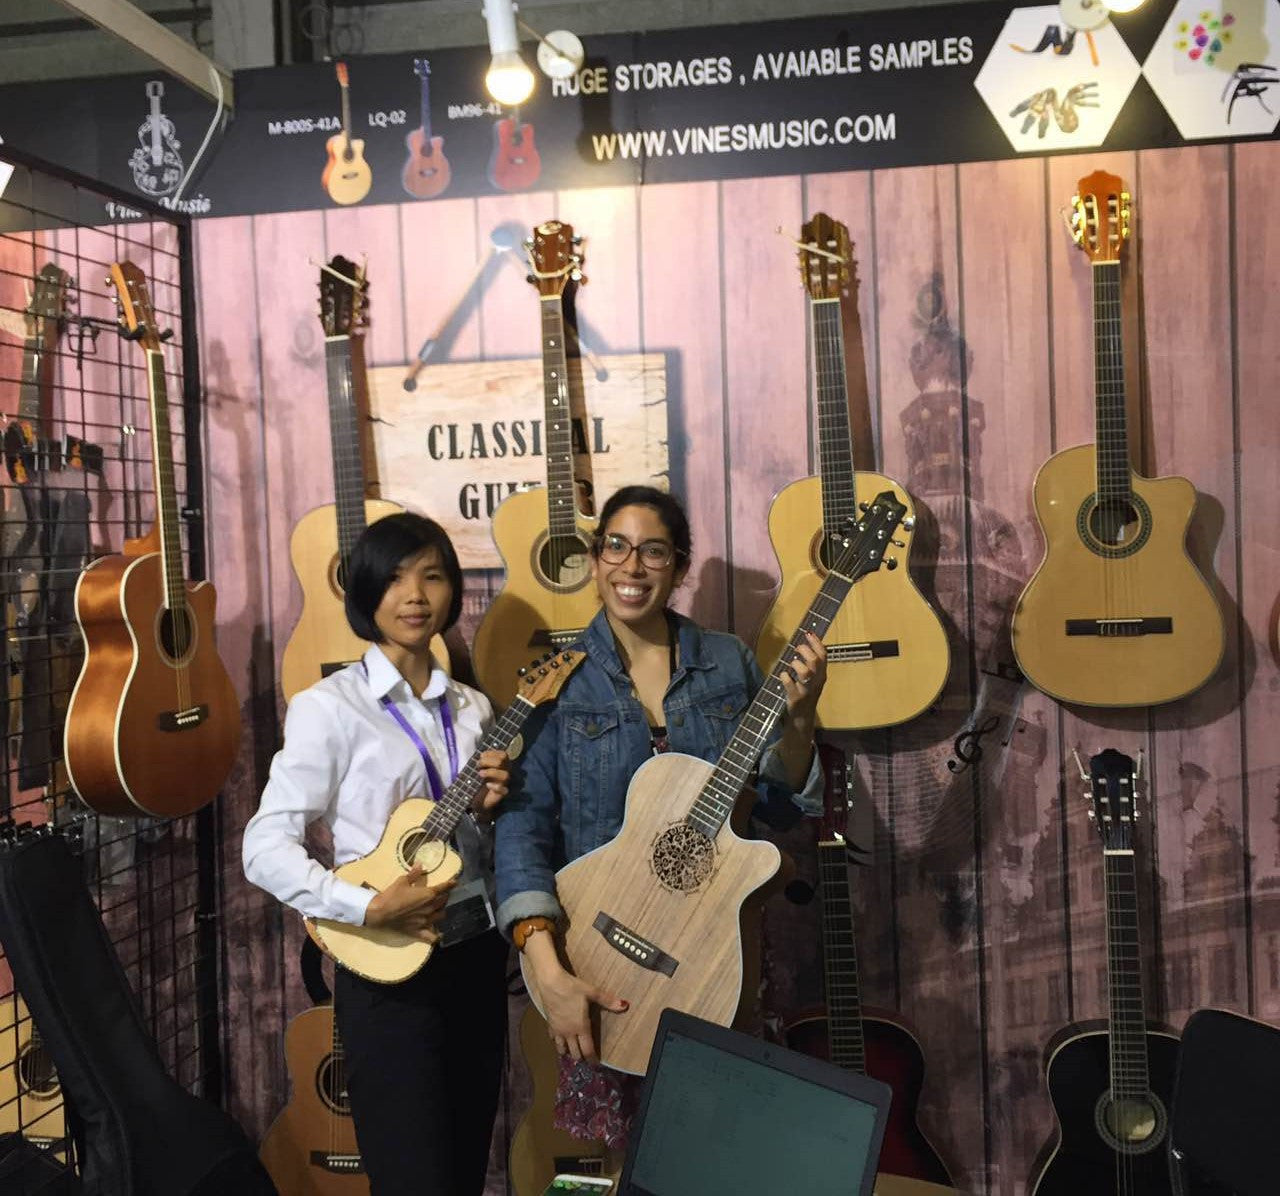 The Shanghai Music Show Vines Music booth